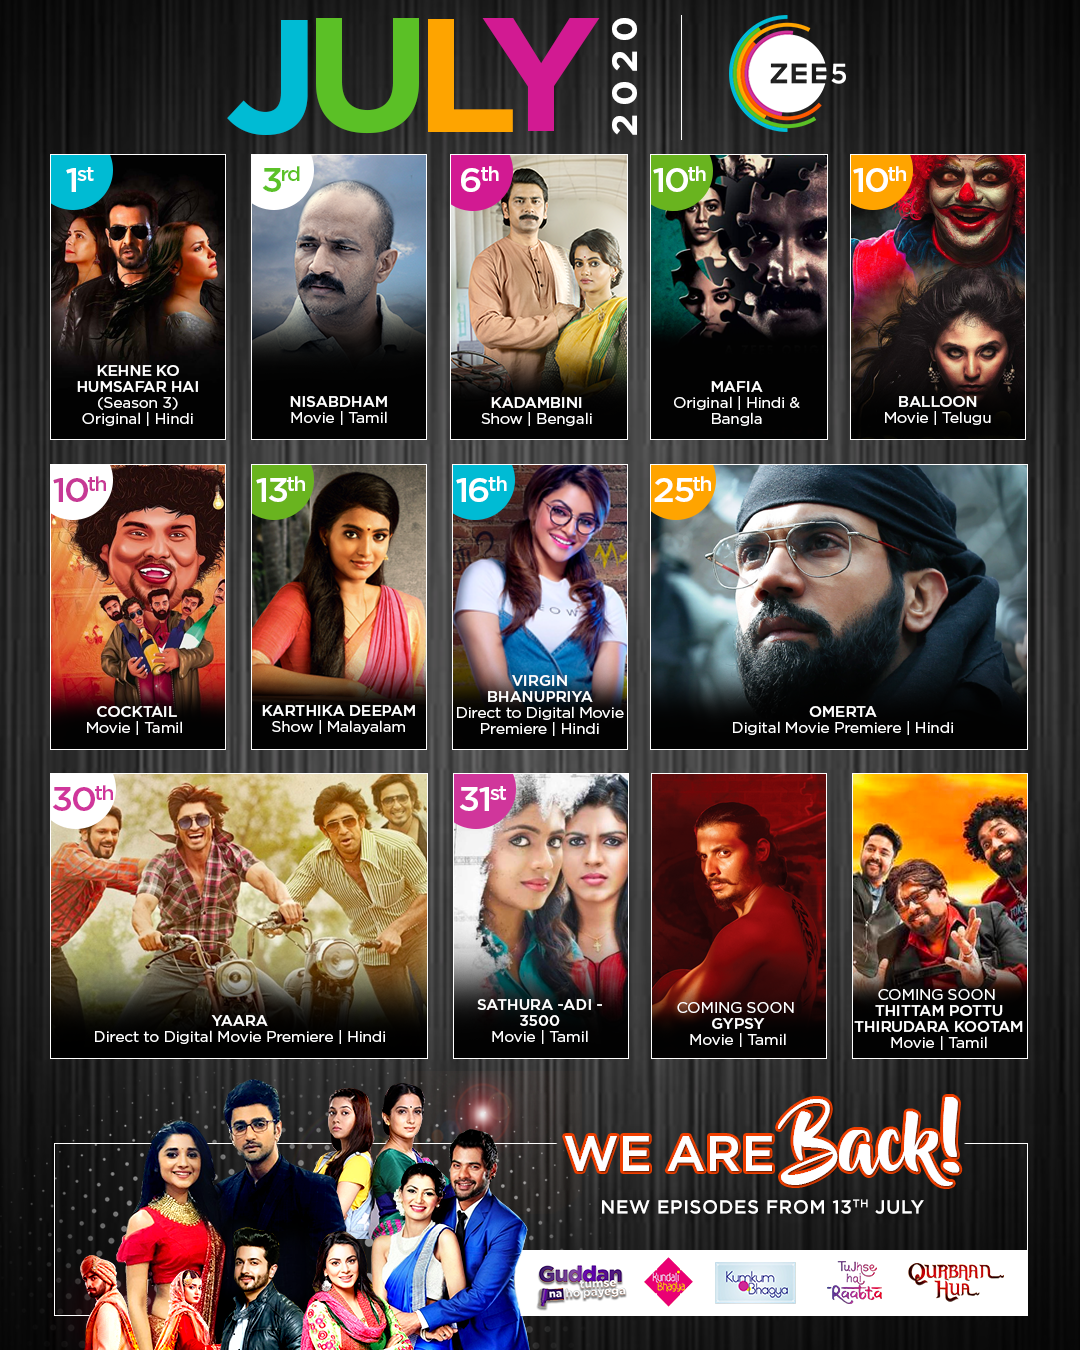 Zee5 Global rolls out a content-packed July with new movies, TV shows, and direct-to-digital movies